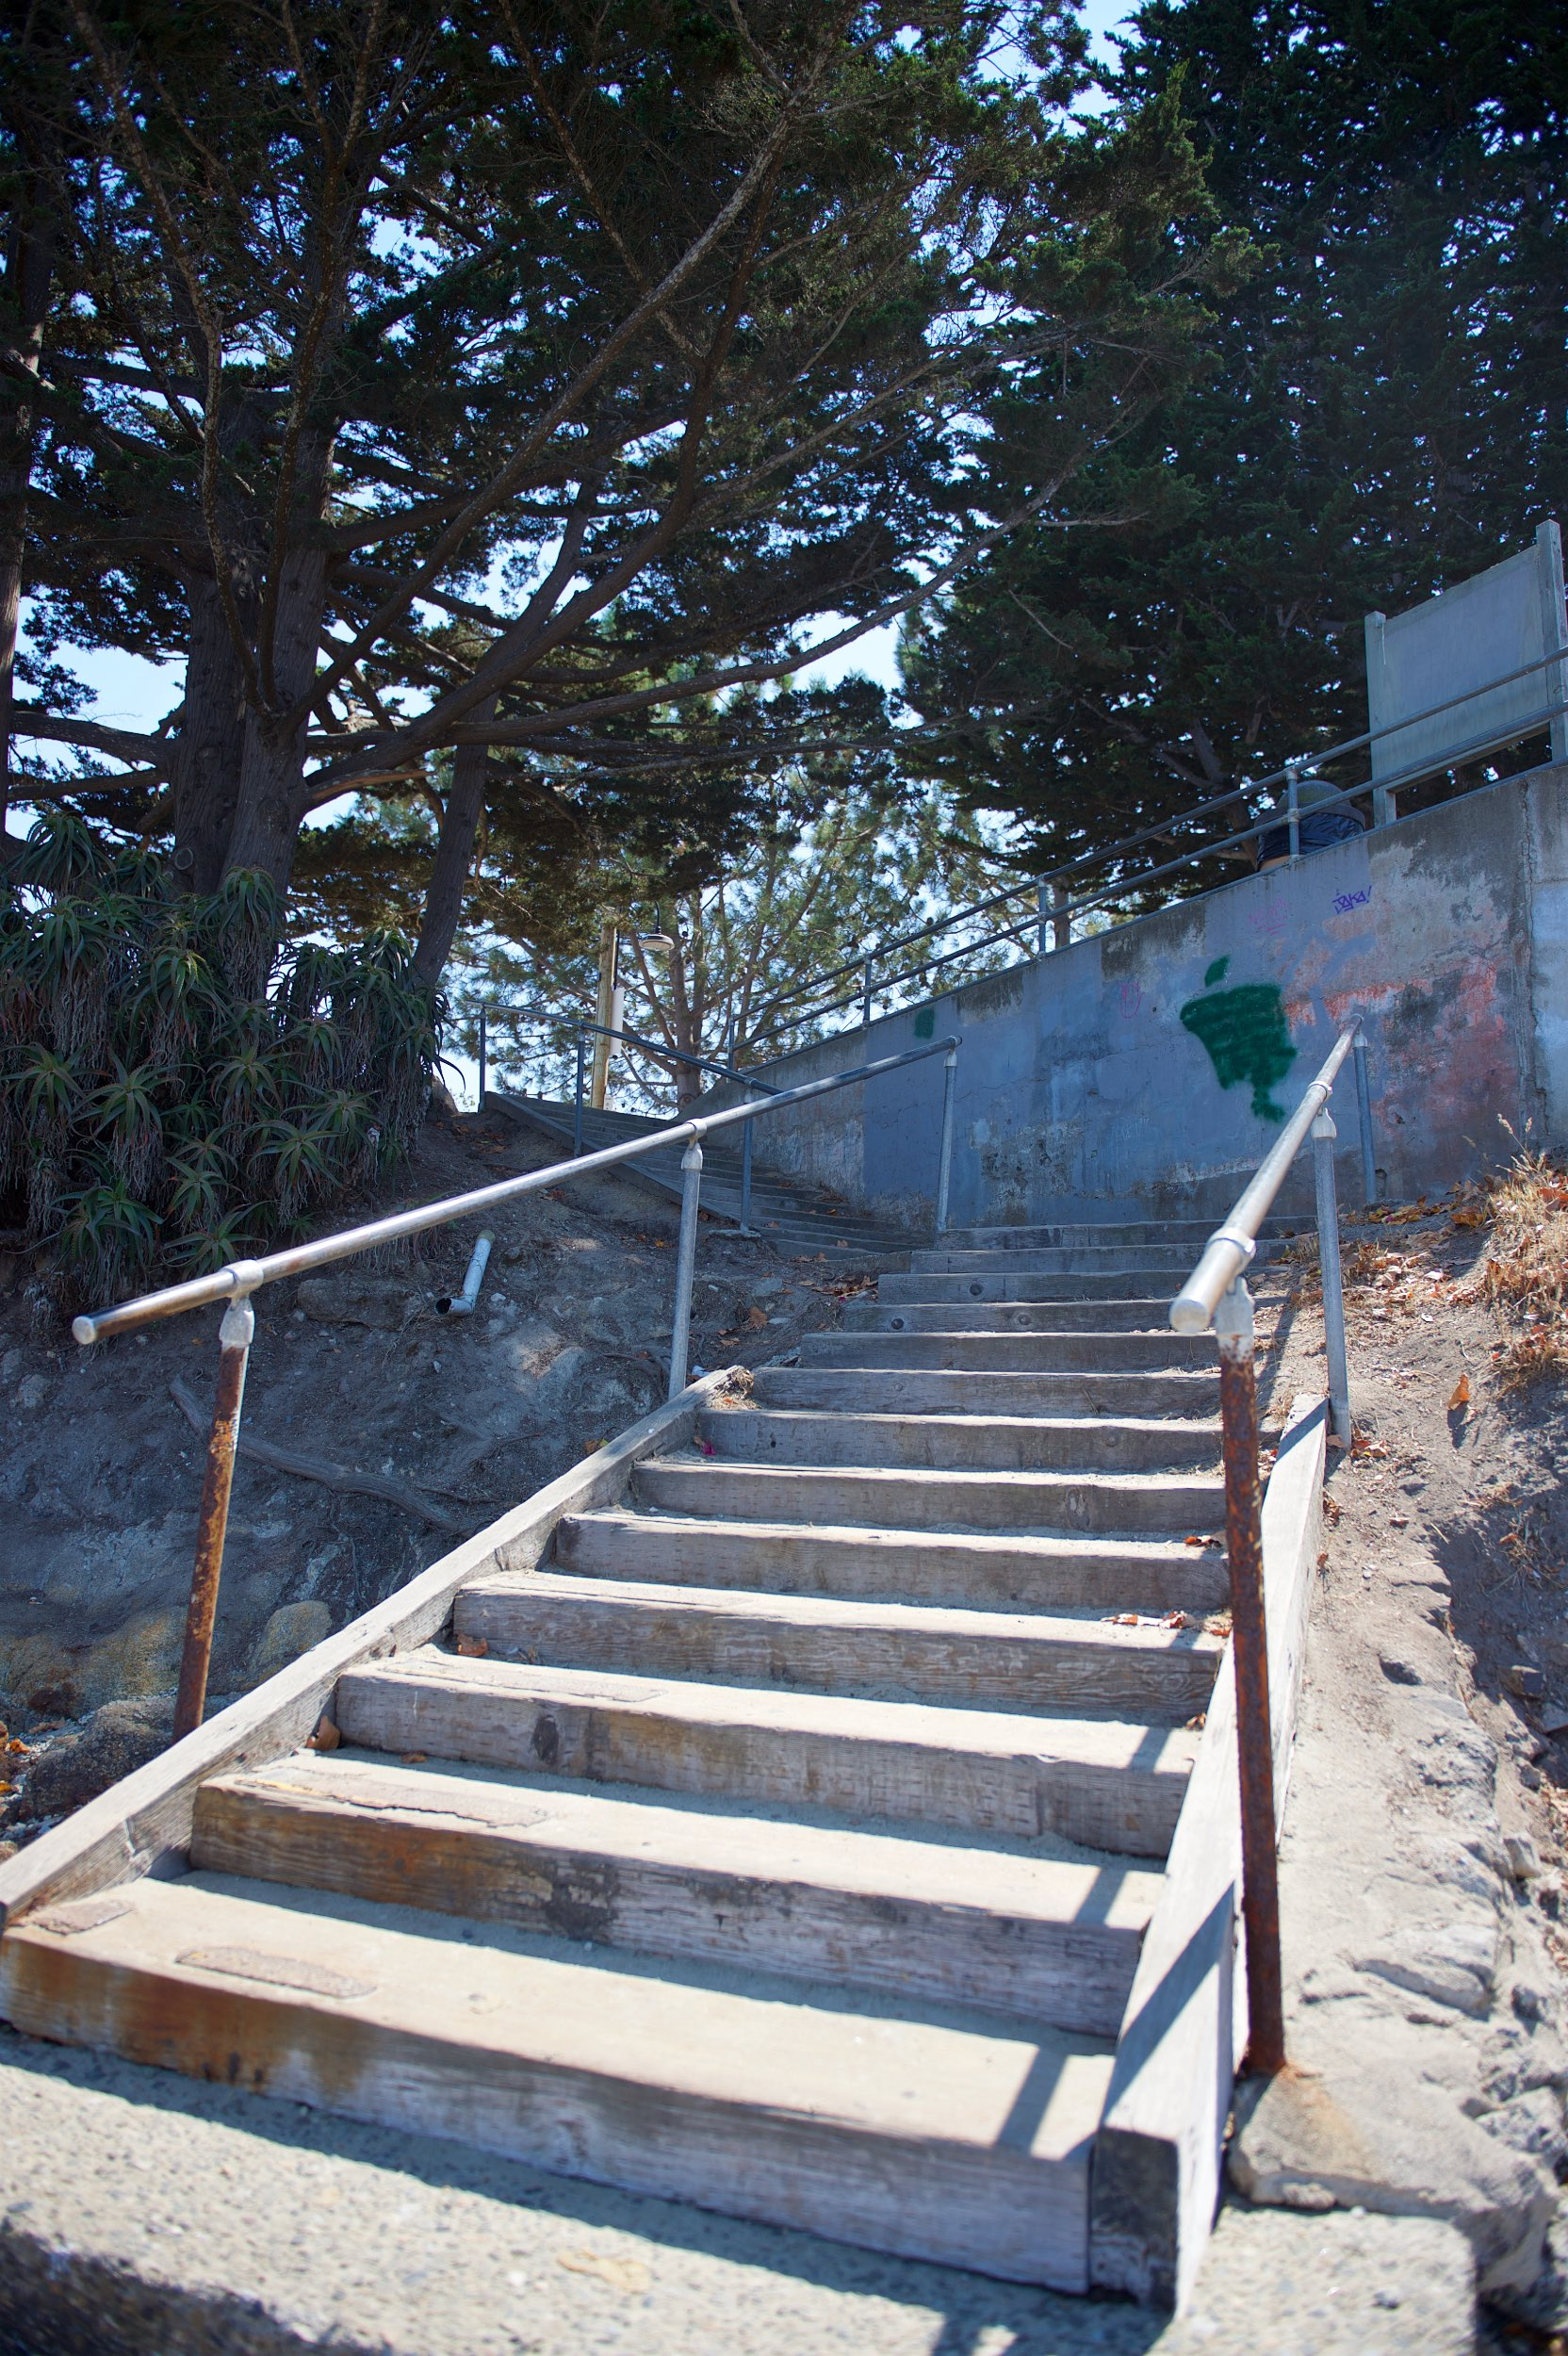 old-whaling-station-and-surrounds-2016-08-26-012.jpg